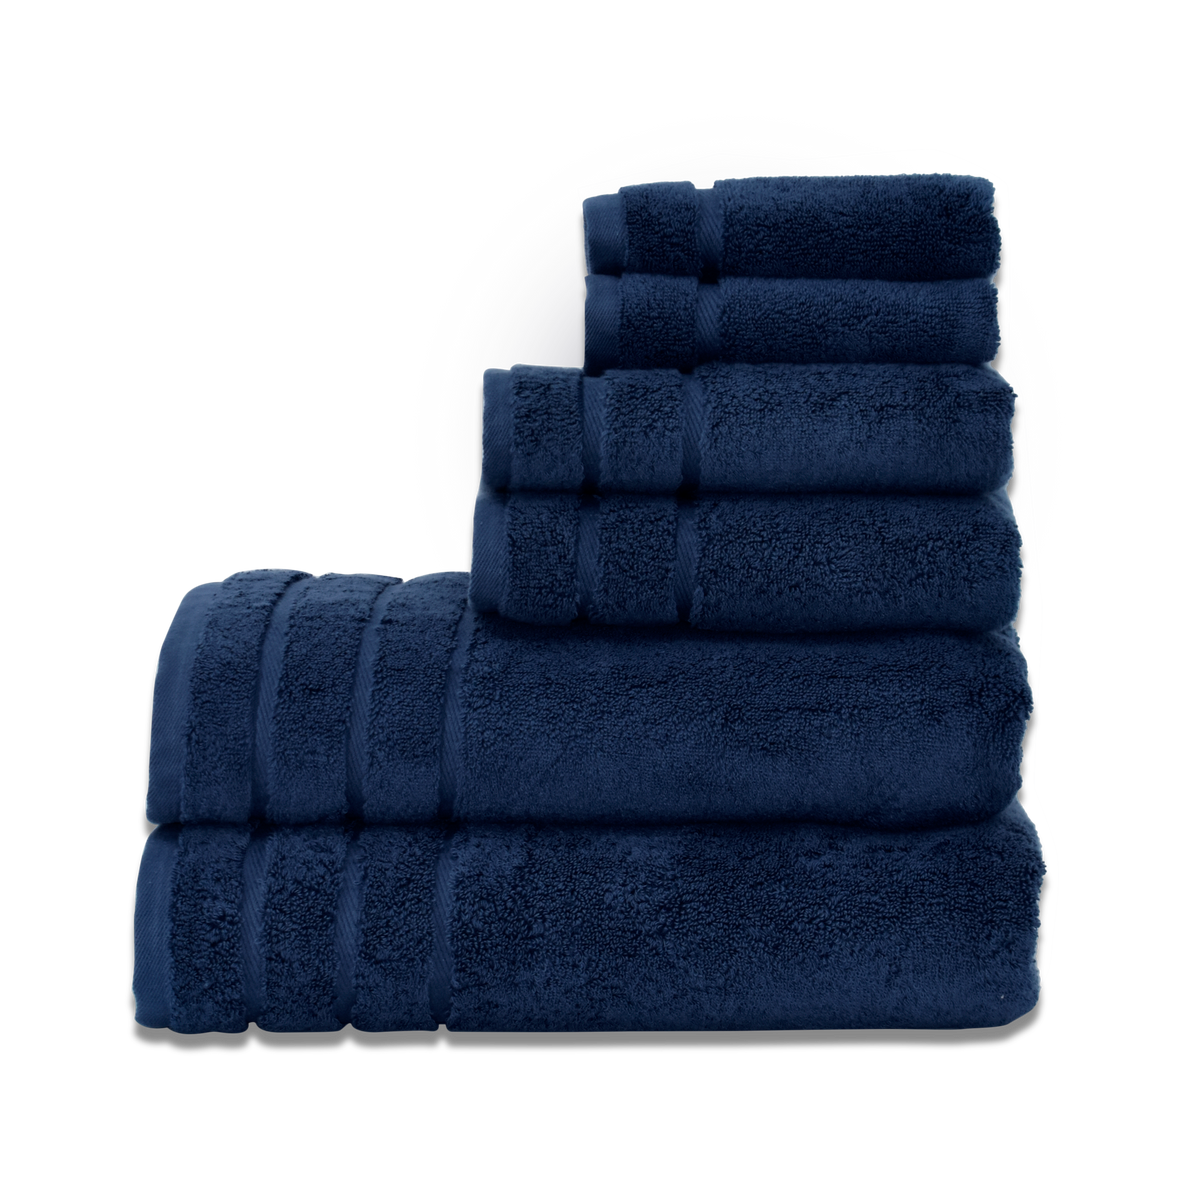 Serene Turkish Cotton Towel Set in Navy Blue | Skylark+Owl Linen Co.